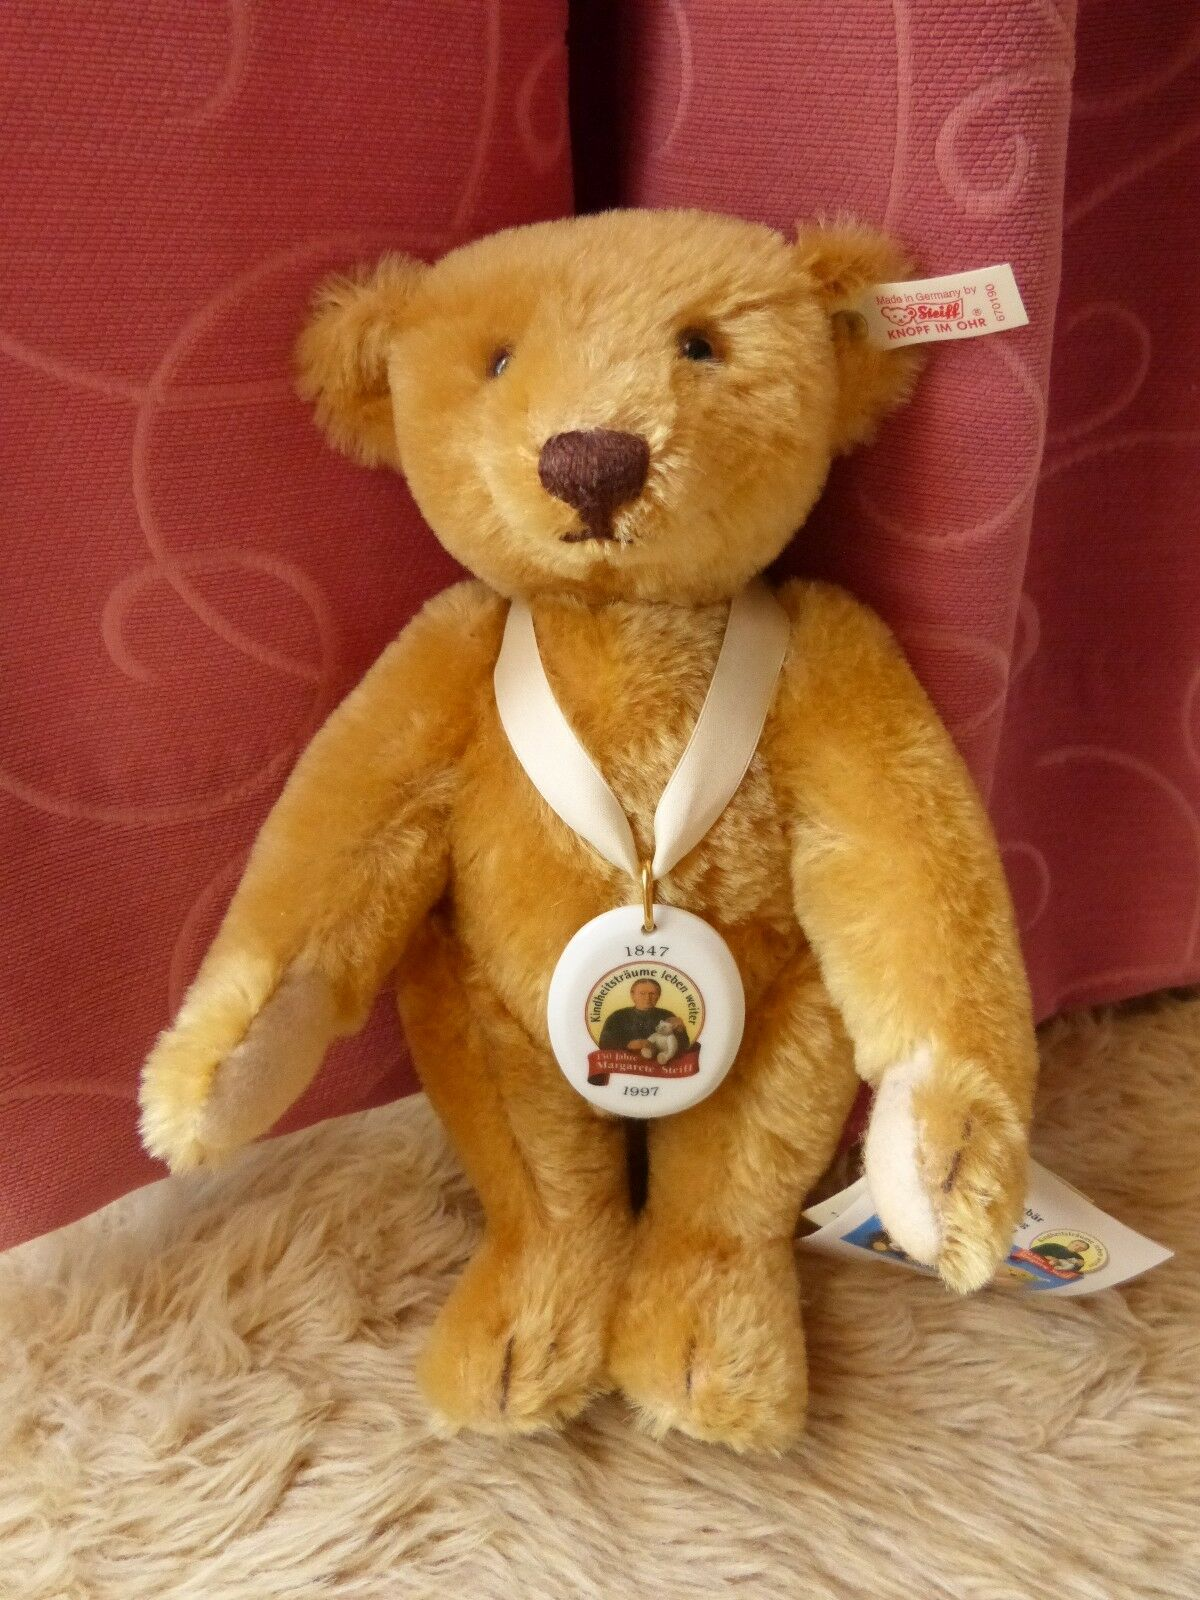 Steiff Teddy Bear Celebrating 150th Anniversary of birth of Margarete Steiff